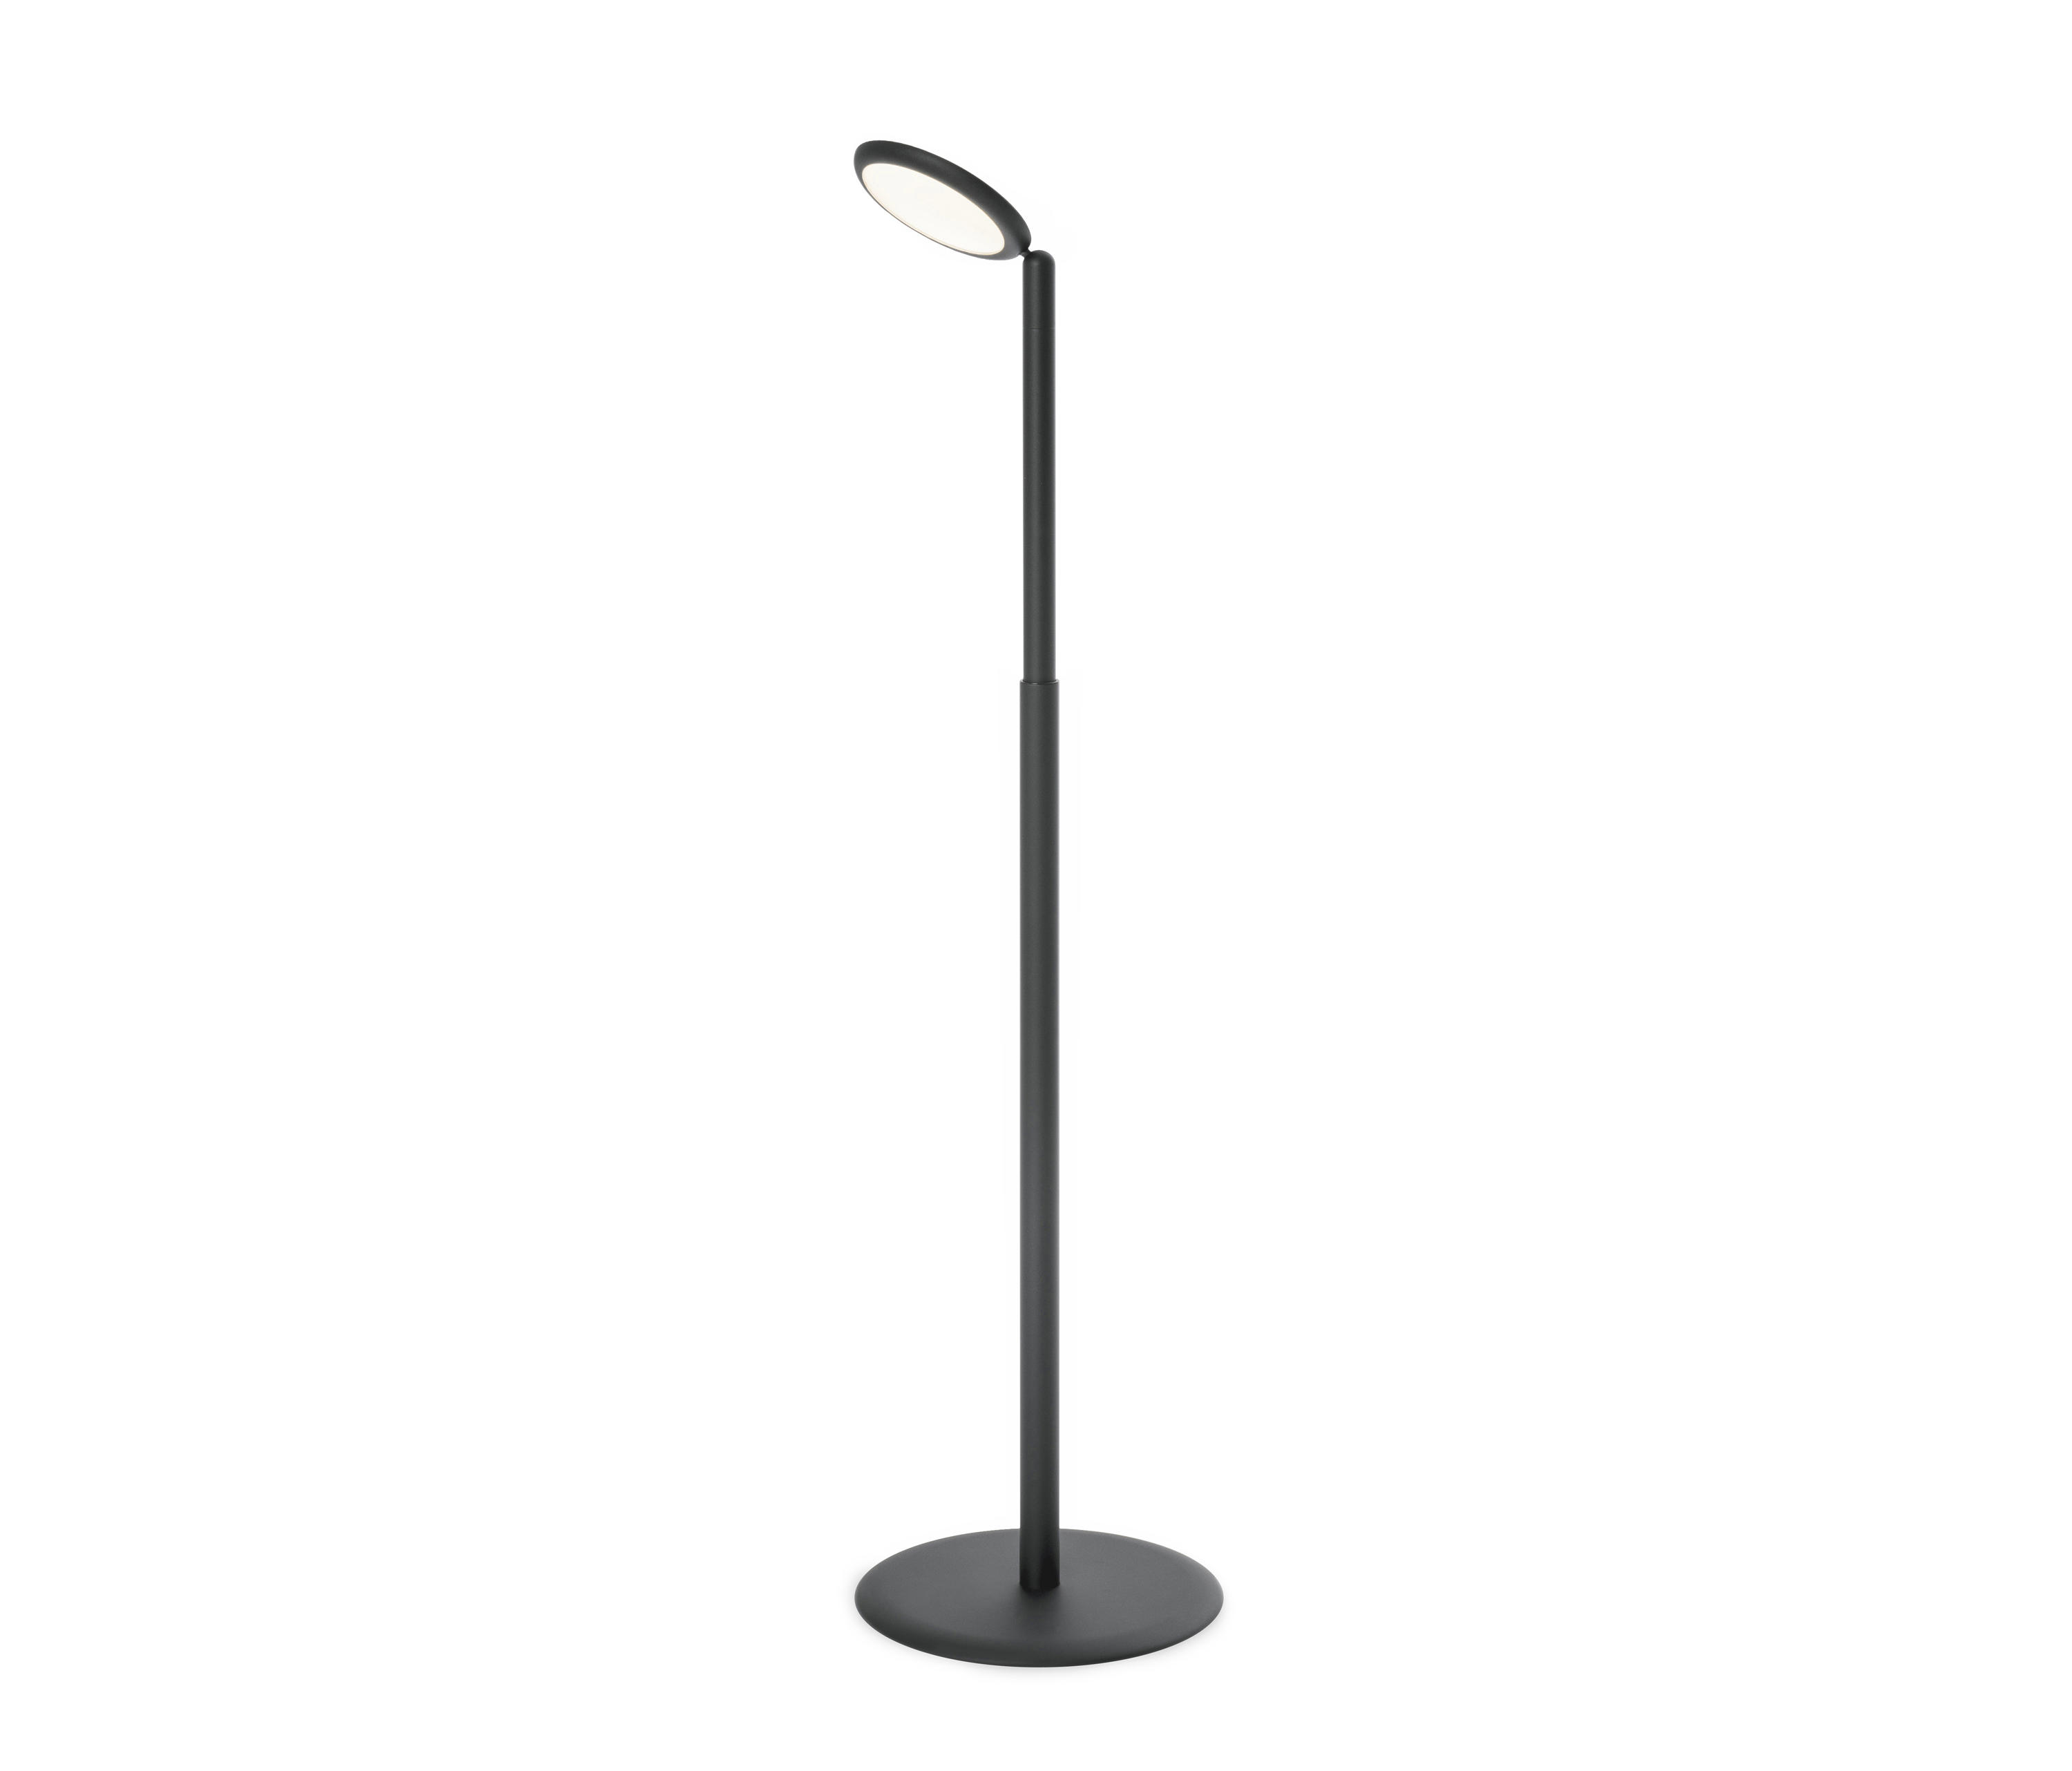 Parrot Black Free Standing Lights From Tobias Grau Architonic